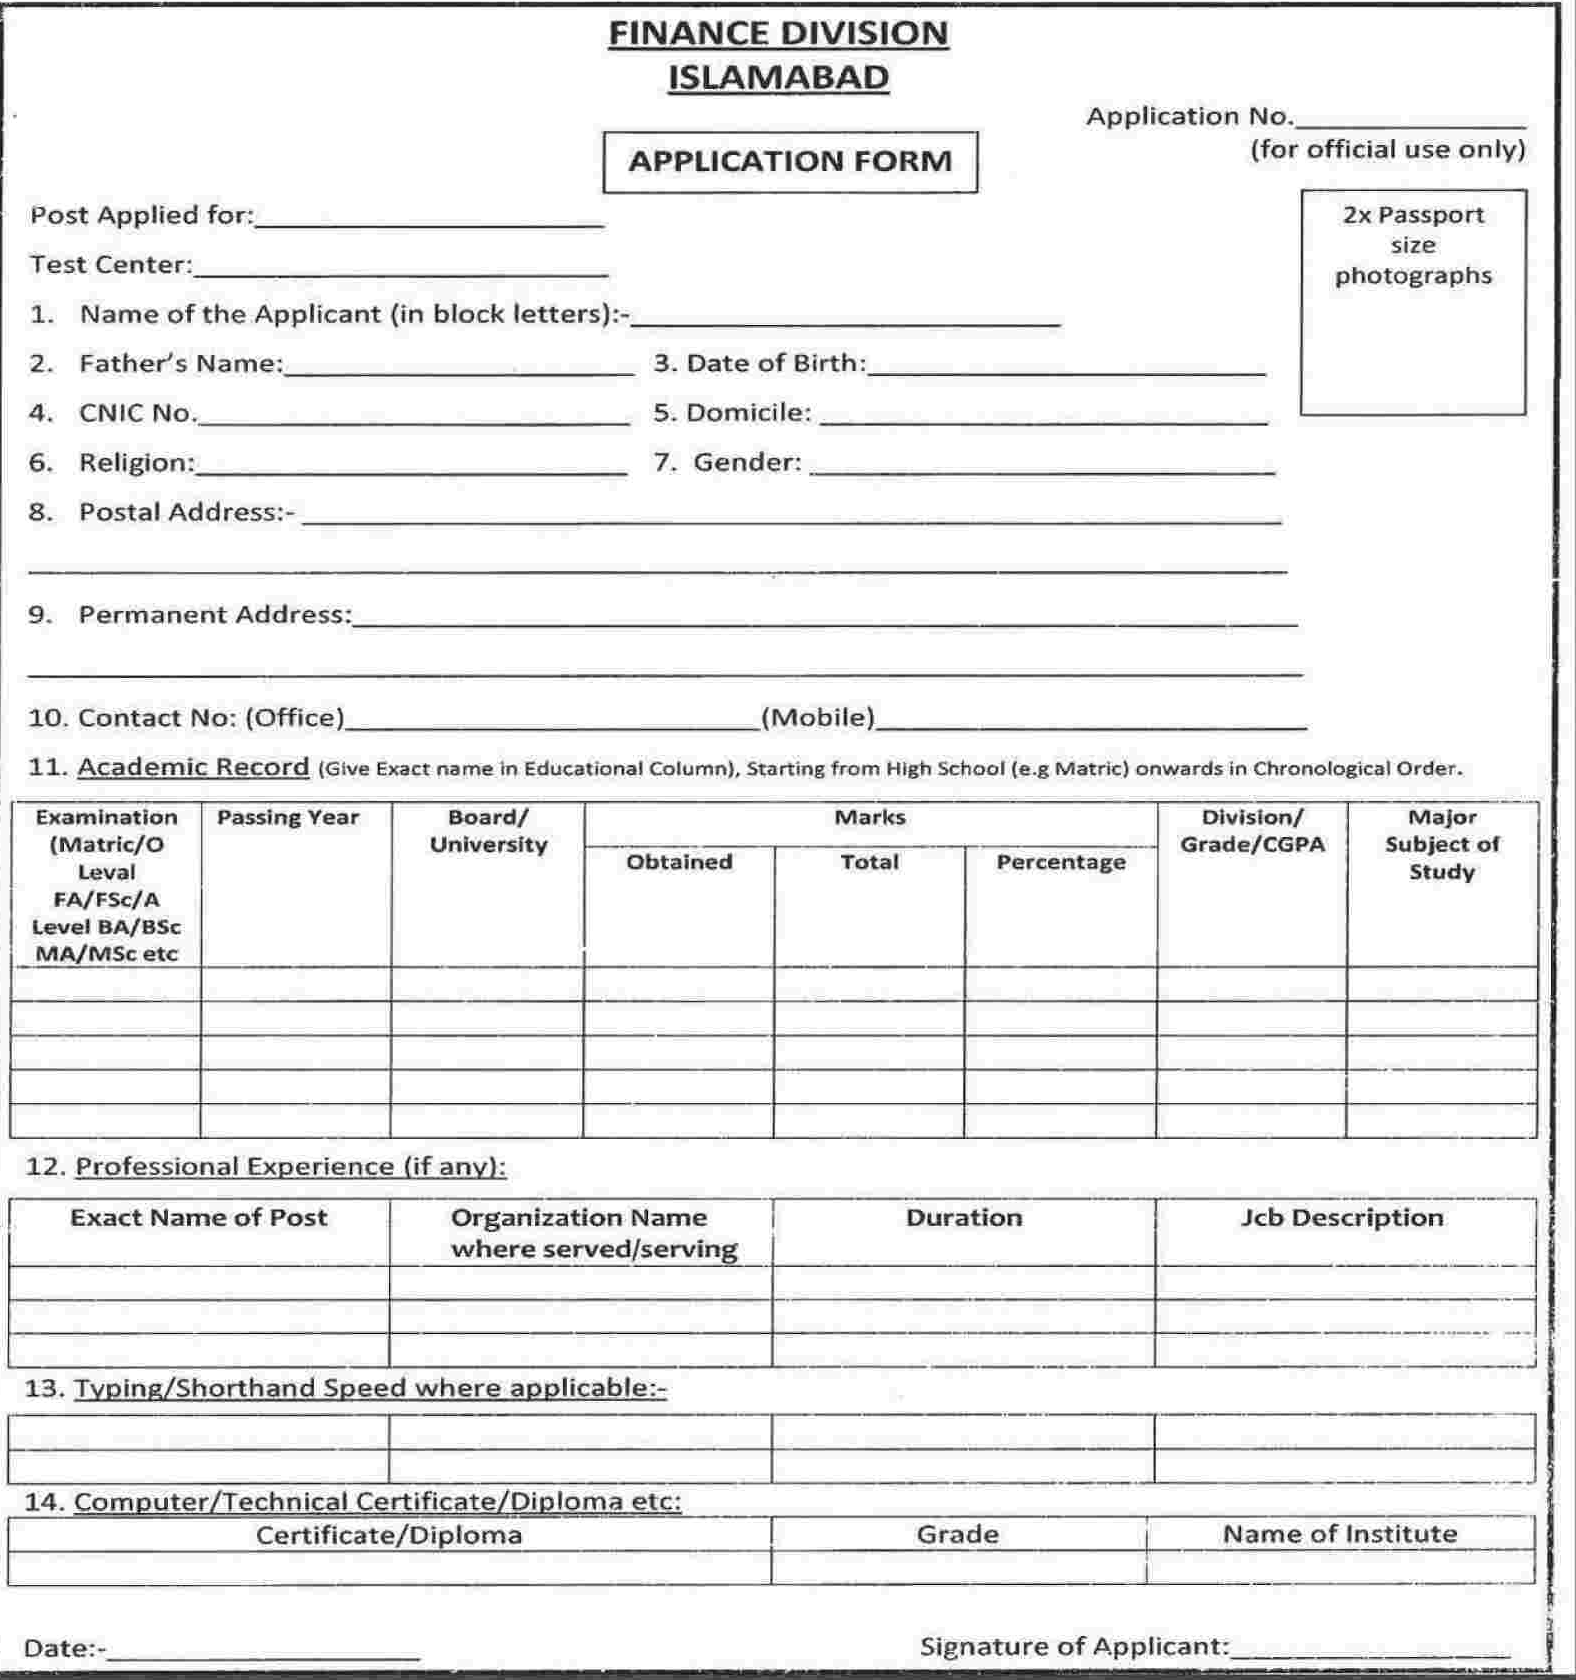 Govt of pakistan finance division islamabad jobs 2015 application govt of pakistan finance division islamabad jobs 2015 application form last dategovt of pakistan finance division falaconquin